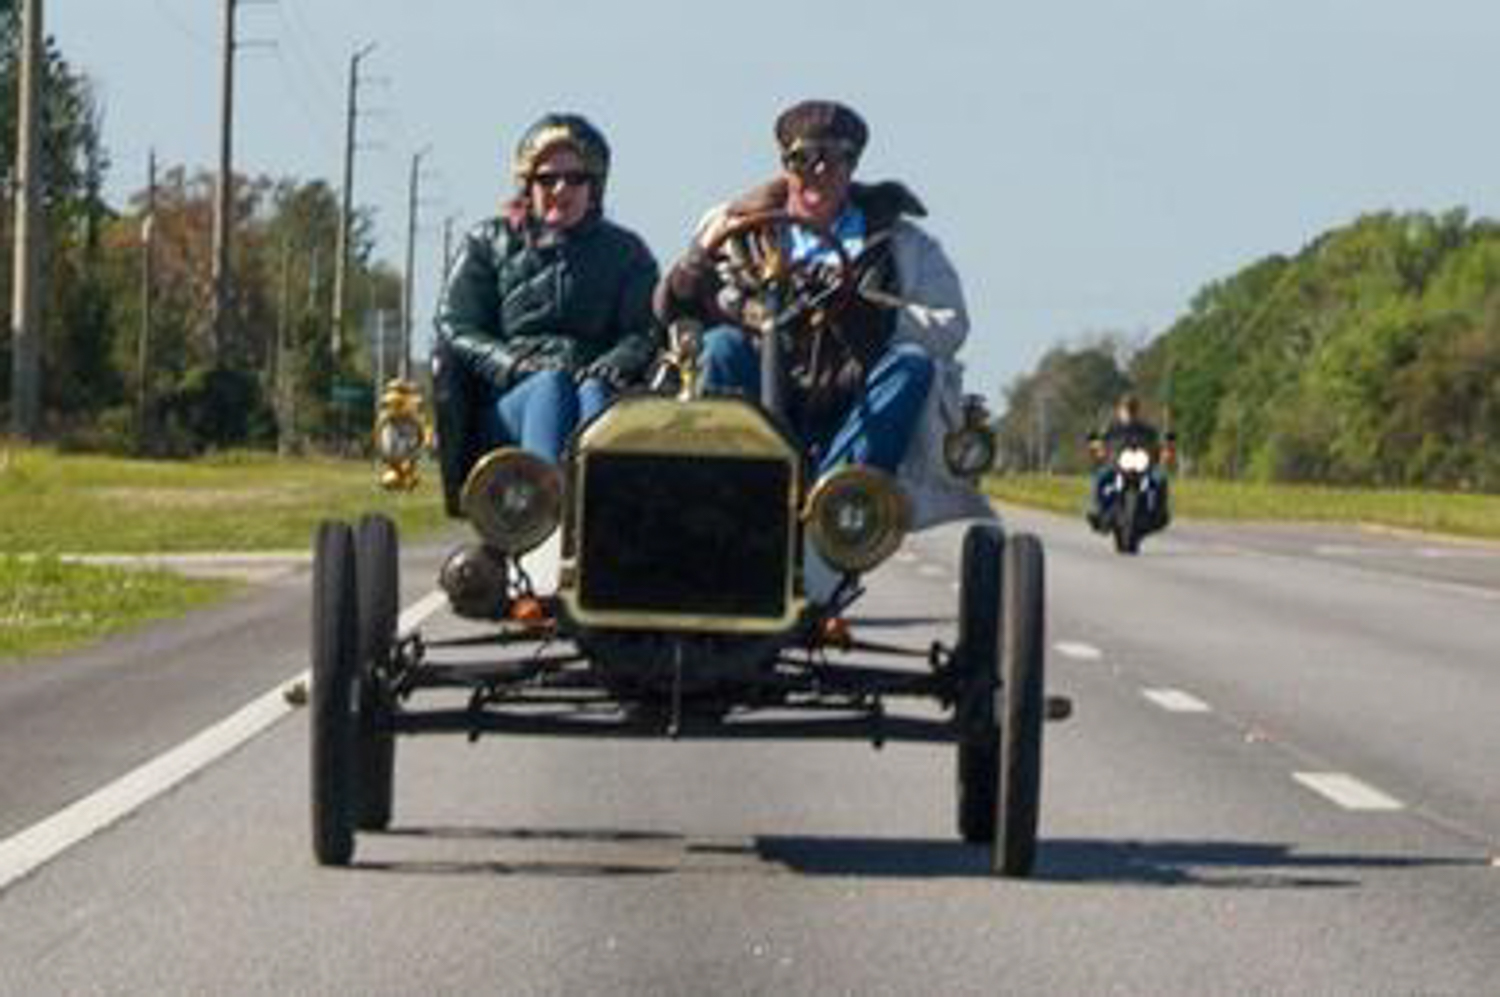 Milt and Rosemary Roorda won the Great Endurance Run in their 1909 Ford Model T Speedster.